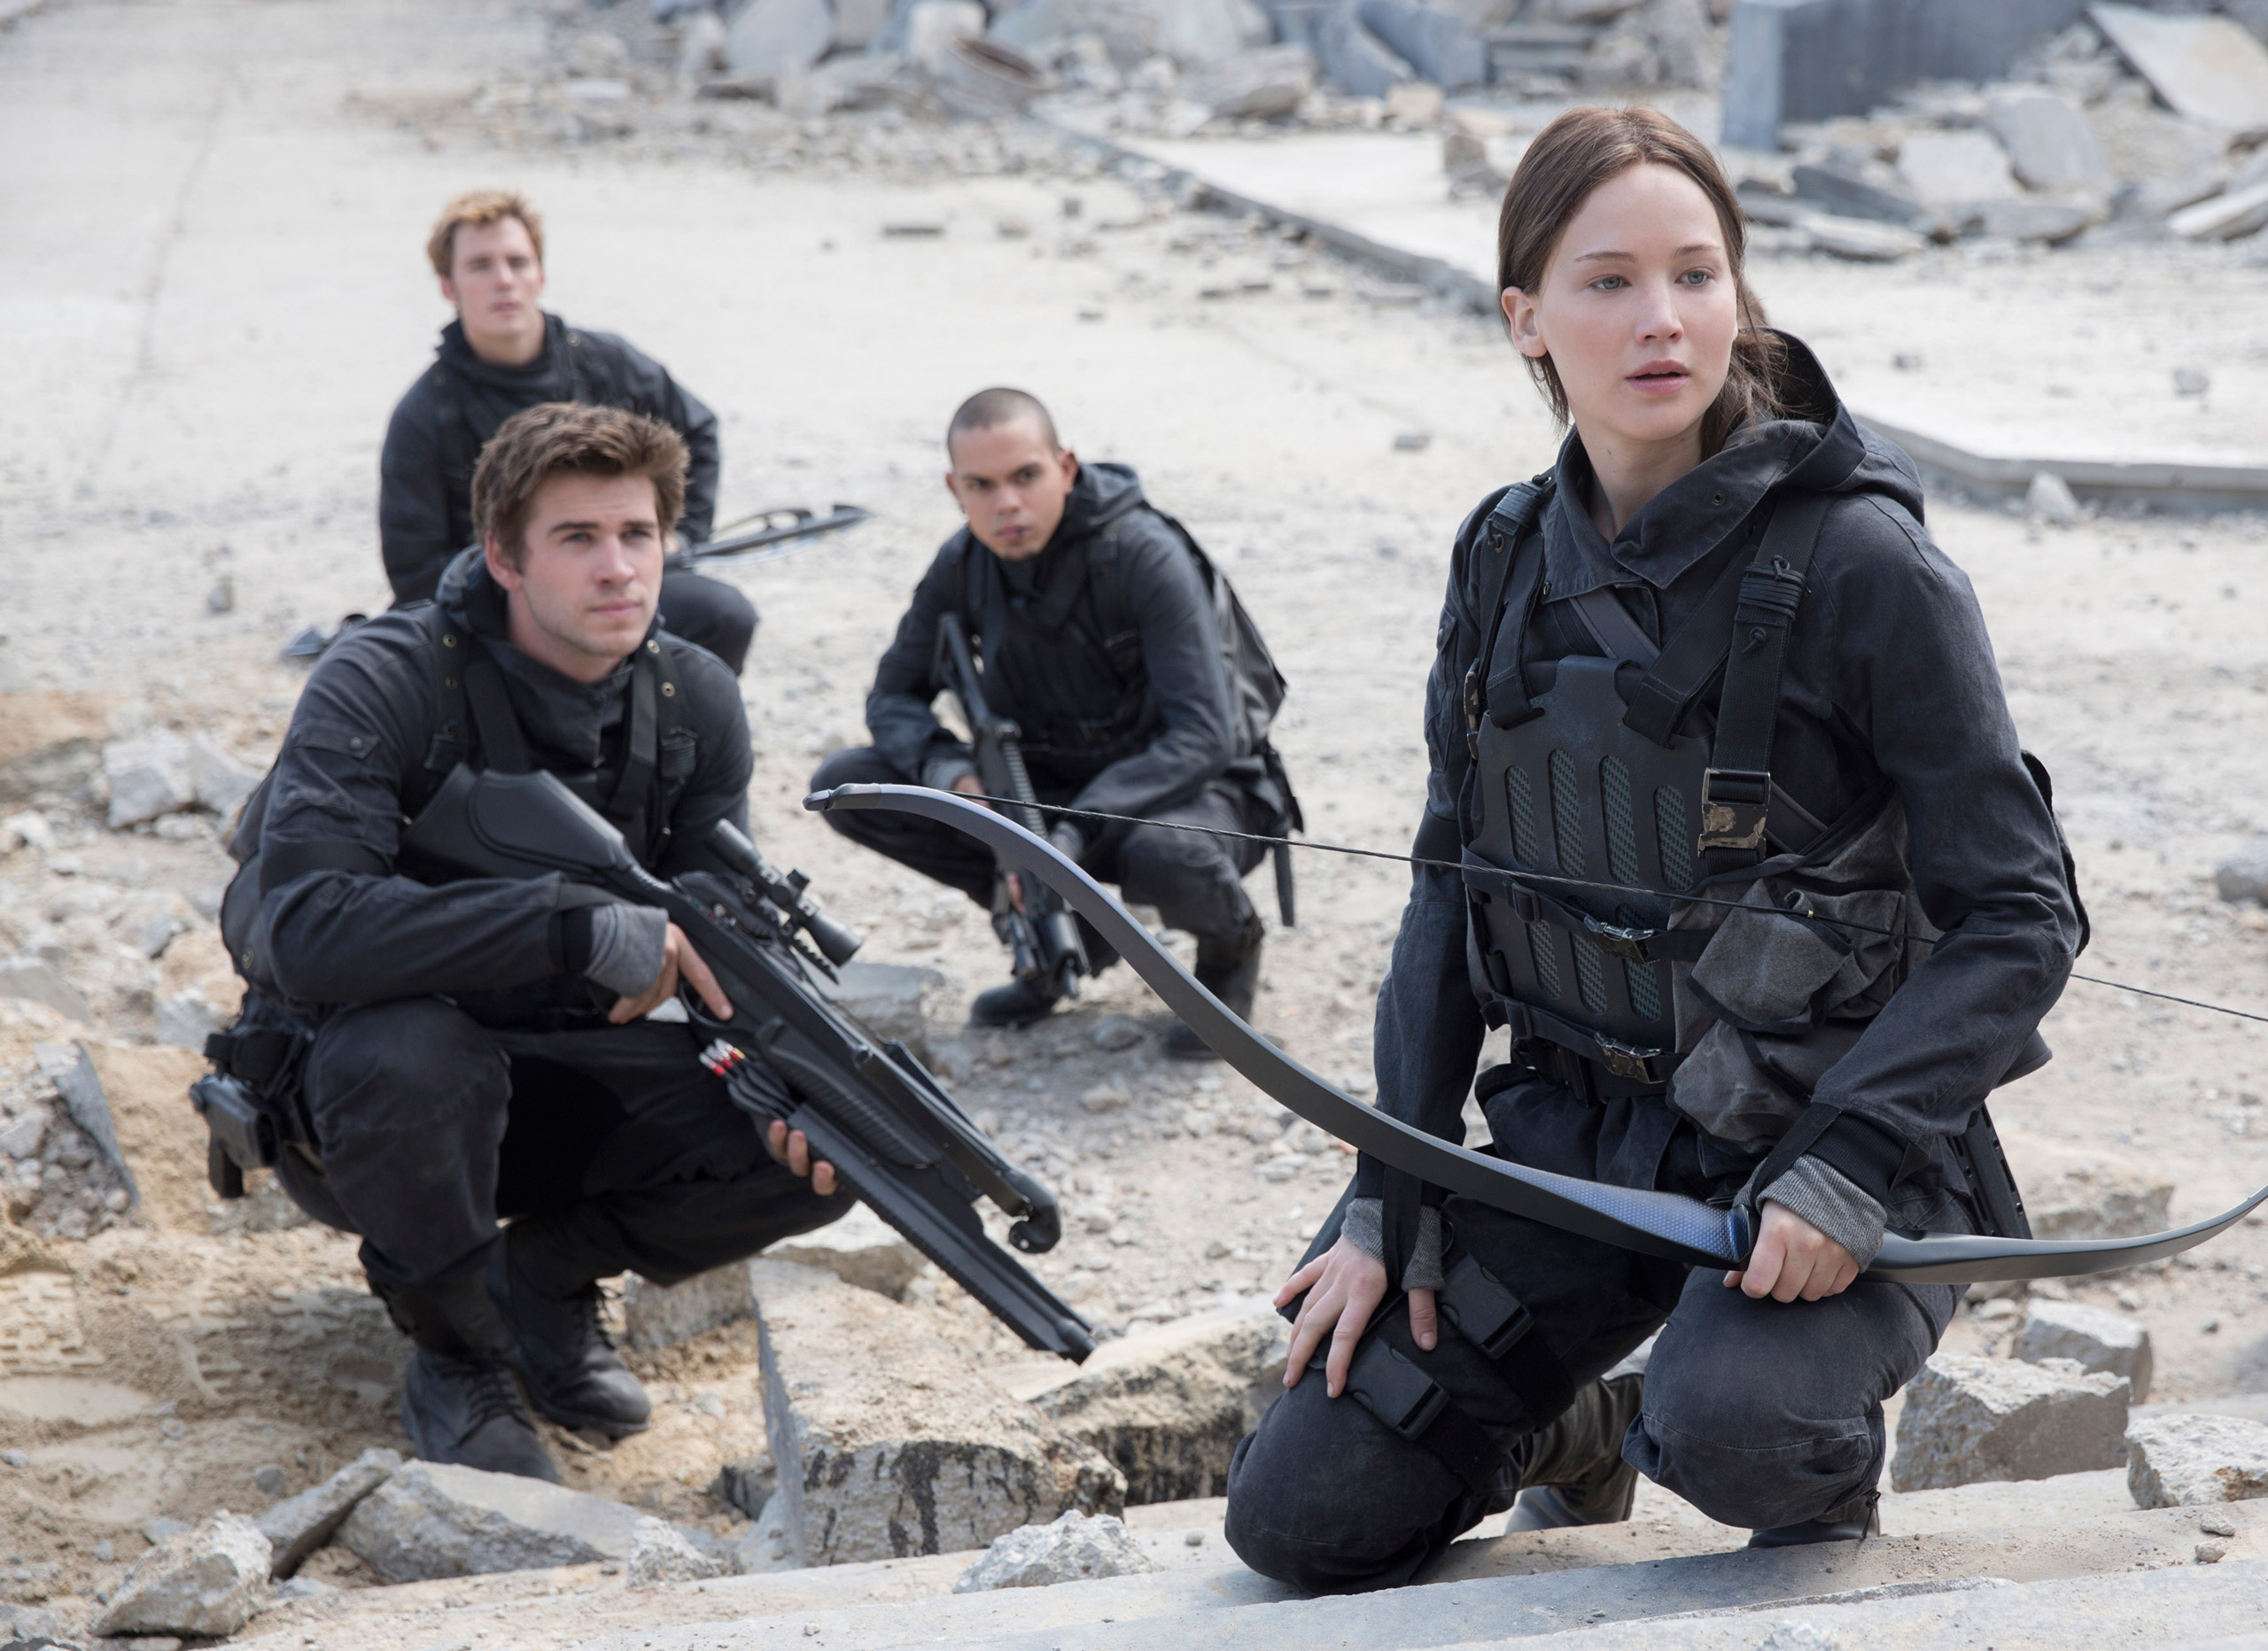 Liam Hemsworth, left, Sam Clafin, back left, Evan Ross, back right, and Jennifer Lawrence, right, in the film,  The Hunger Games: Mockingjay - Part 2.